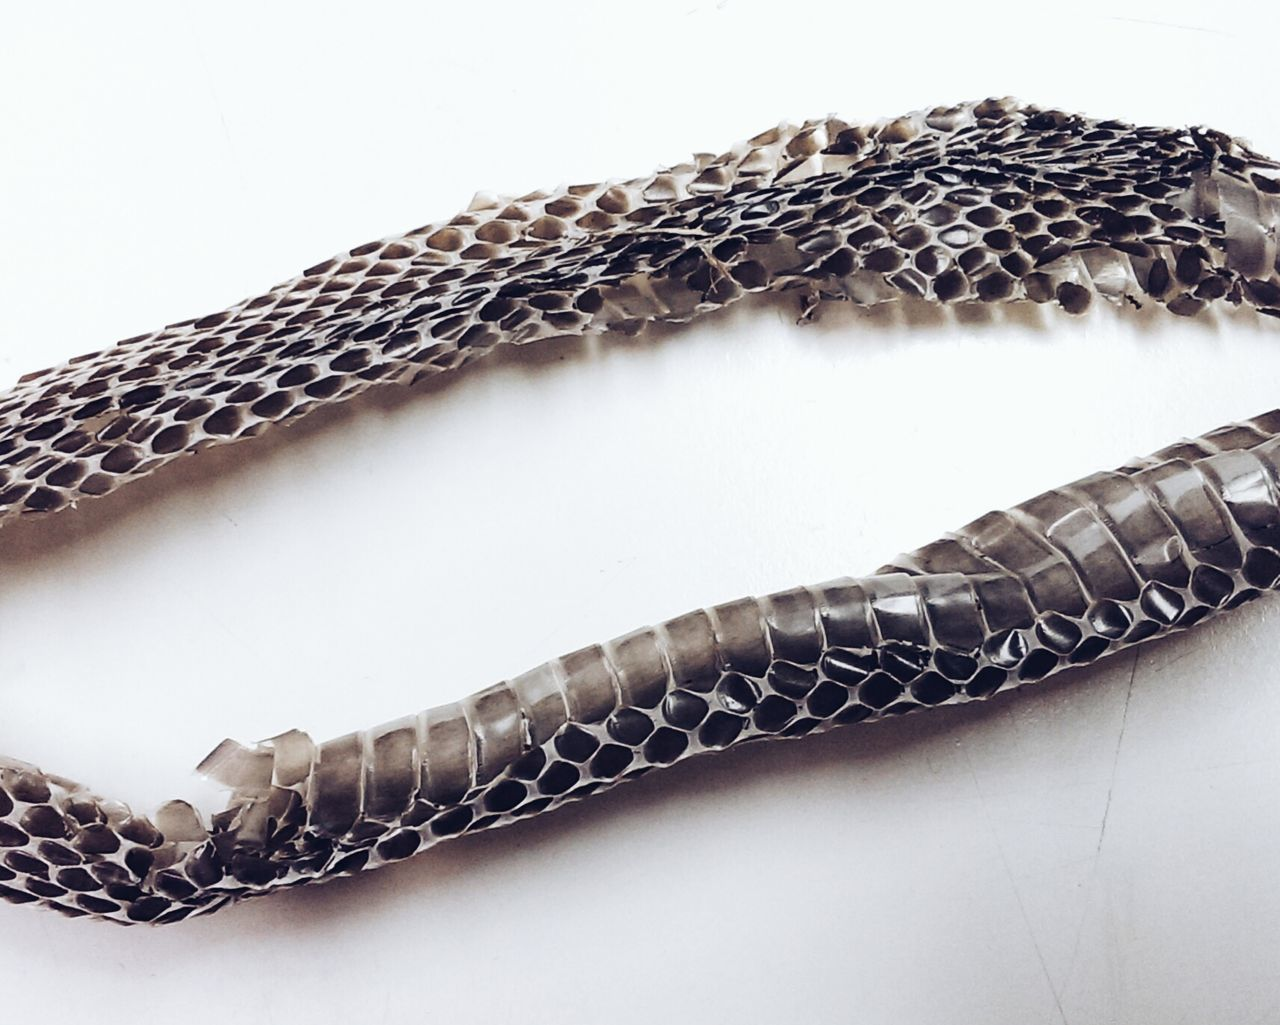 Snake scales against white background